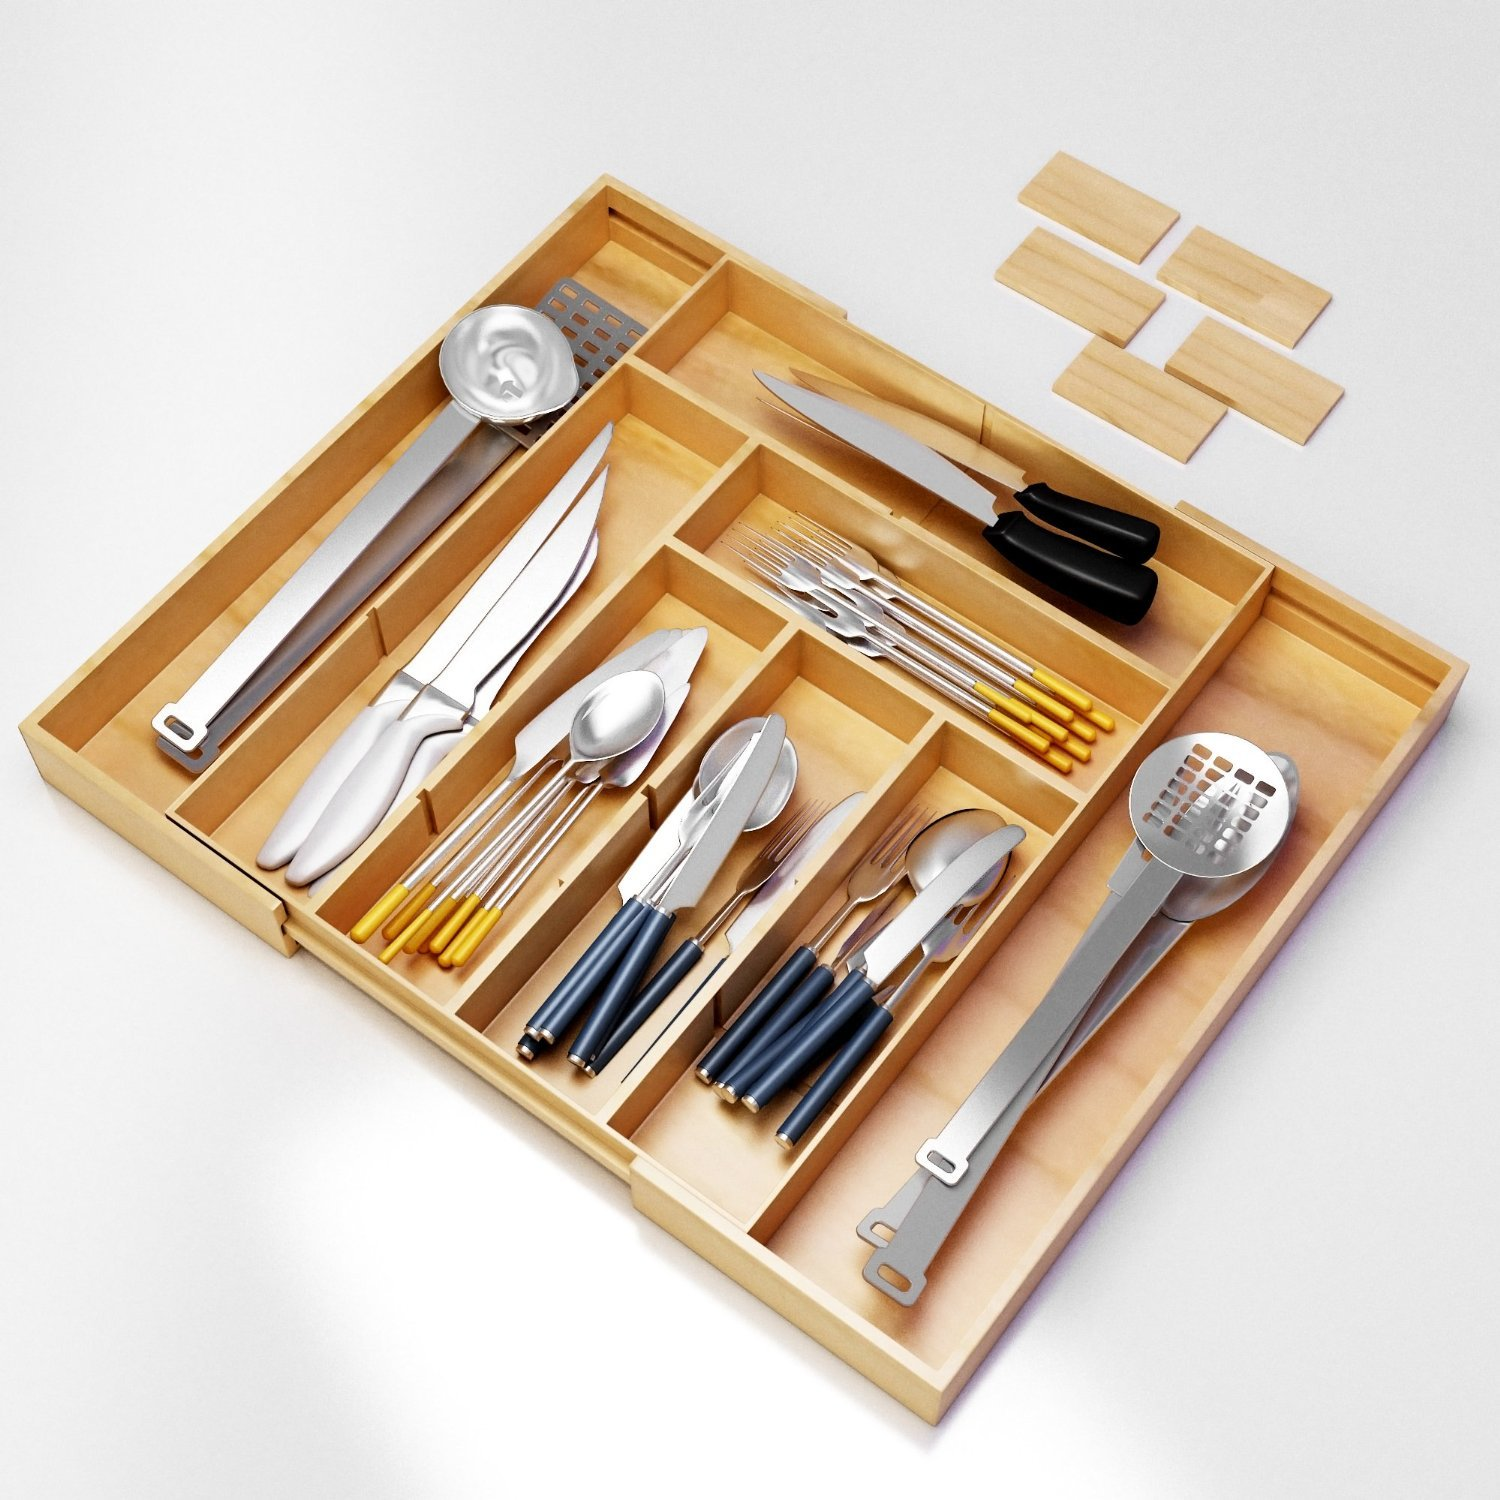 charolas plan flatware gh portacubiertos kitchen congenial utensil popular rubbermaid wood silver tray estuches storage perfect cuberteras silverware divider organize cheery drawer cubiertos organizer